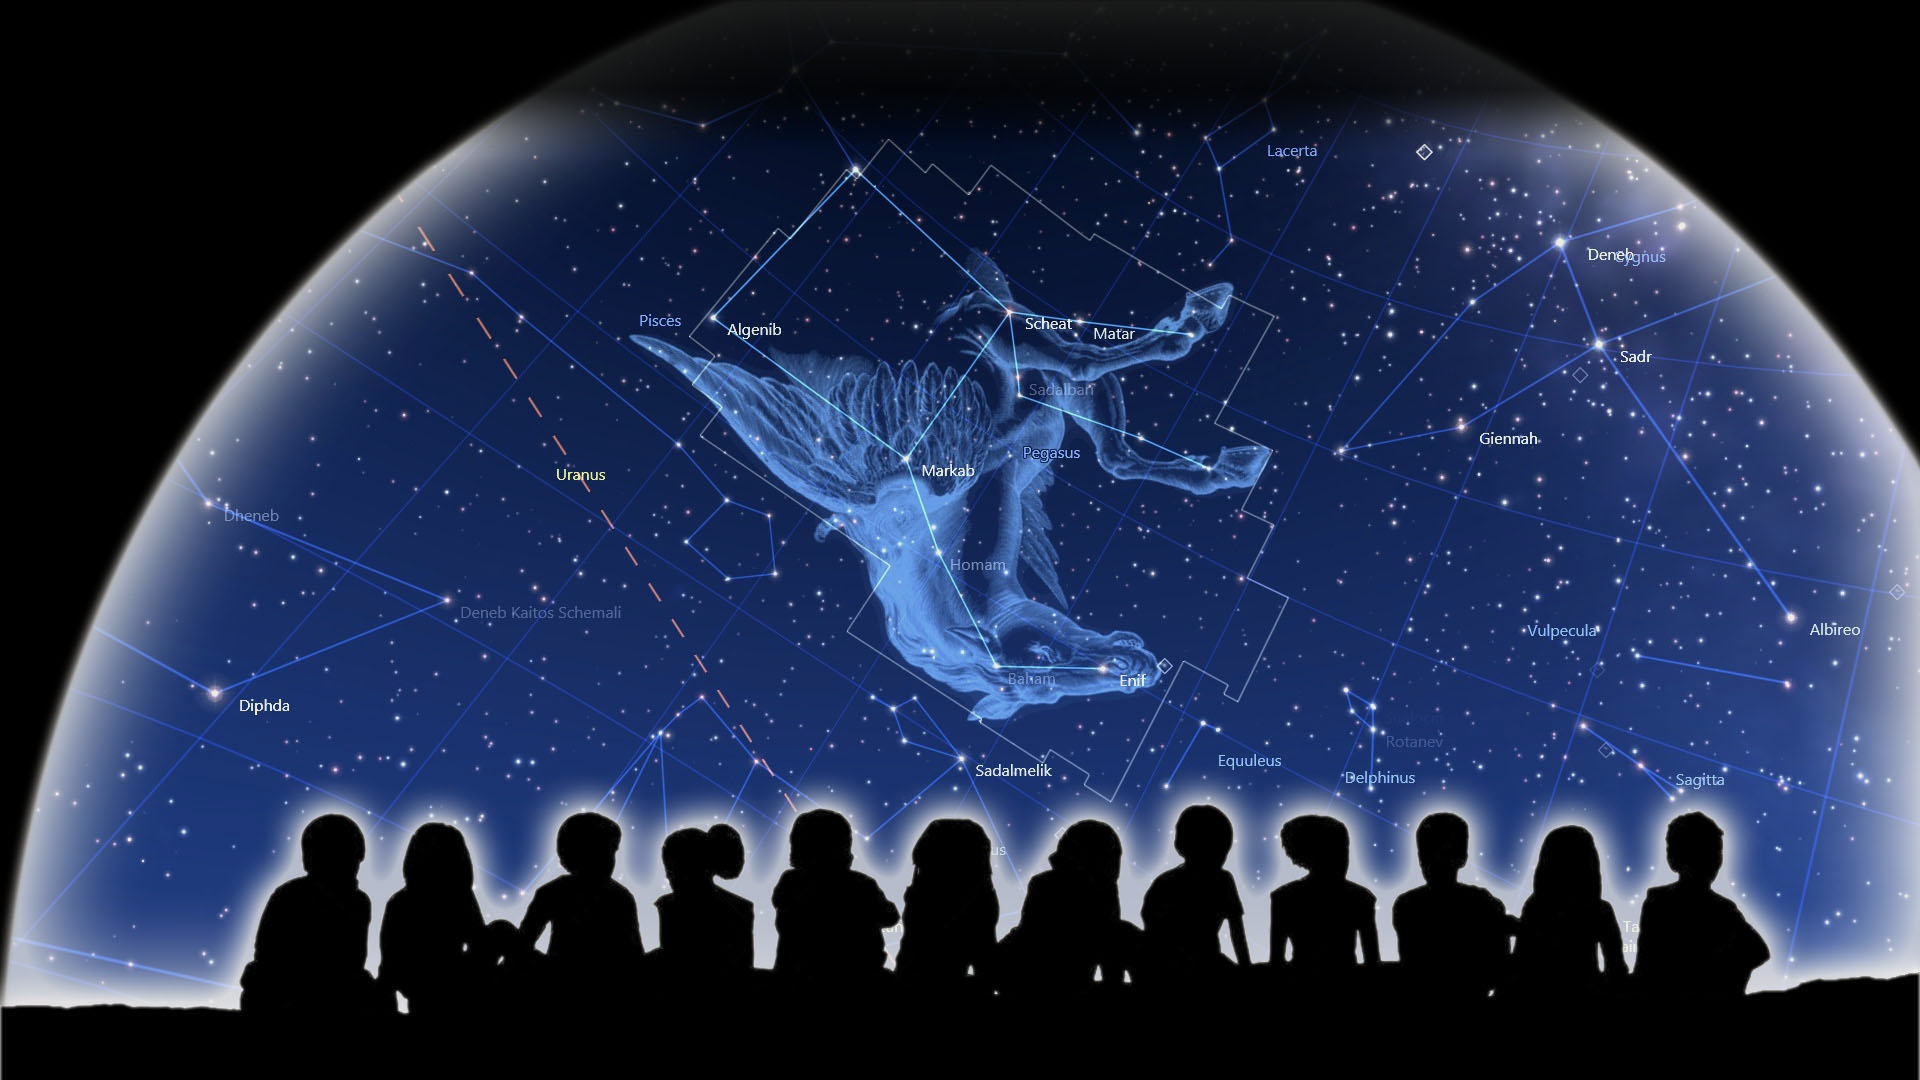 Starry Night Night Sky Tours In Villas - How to read a star map